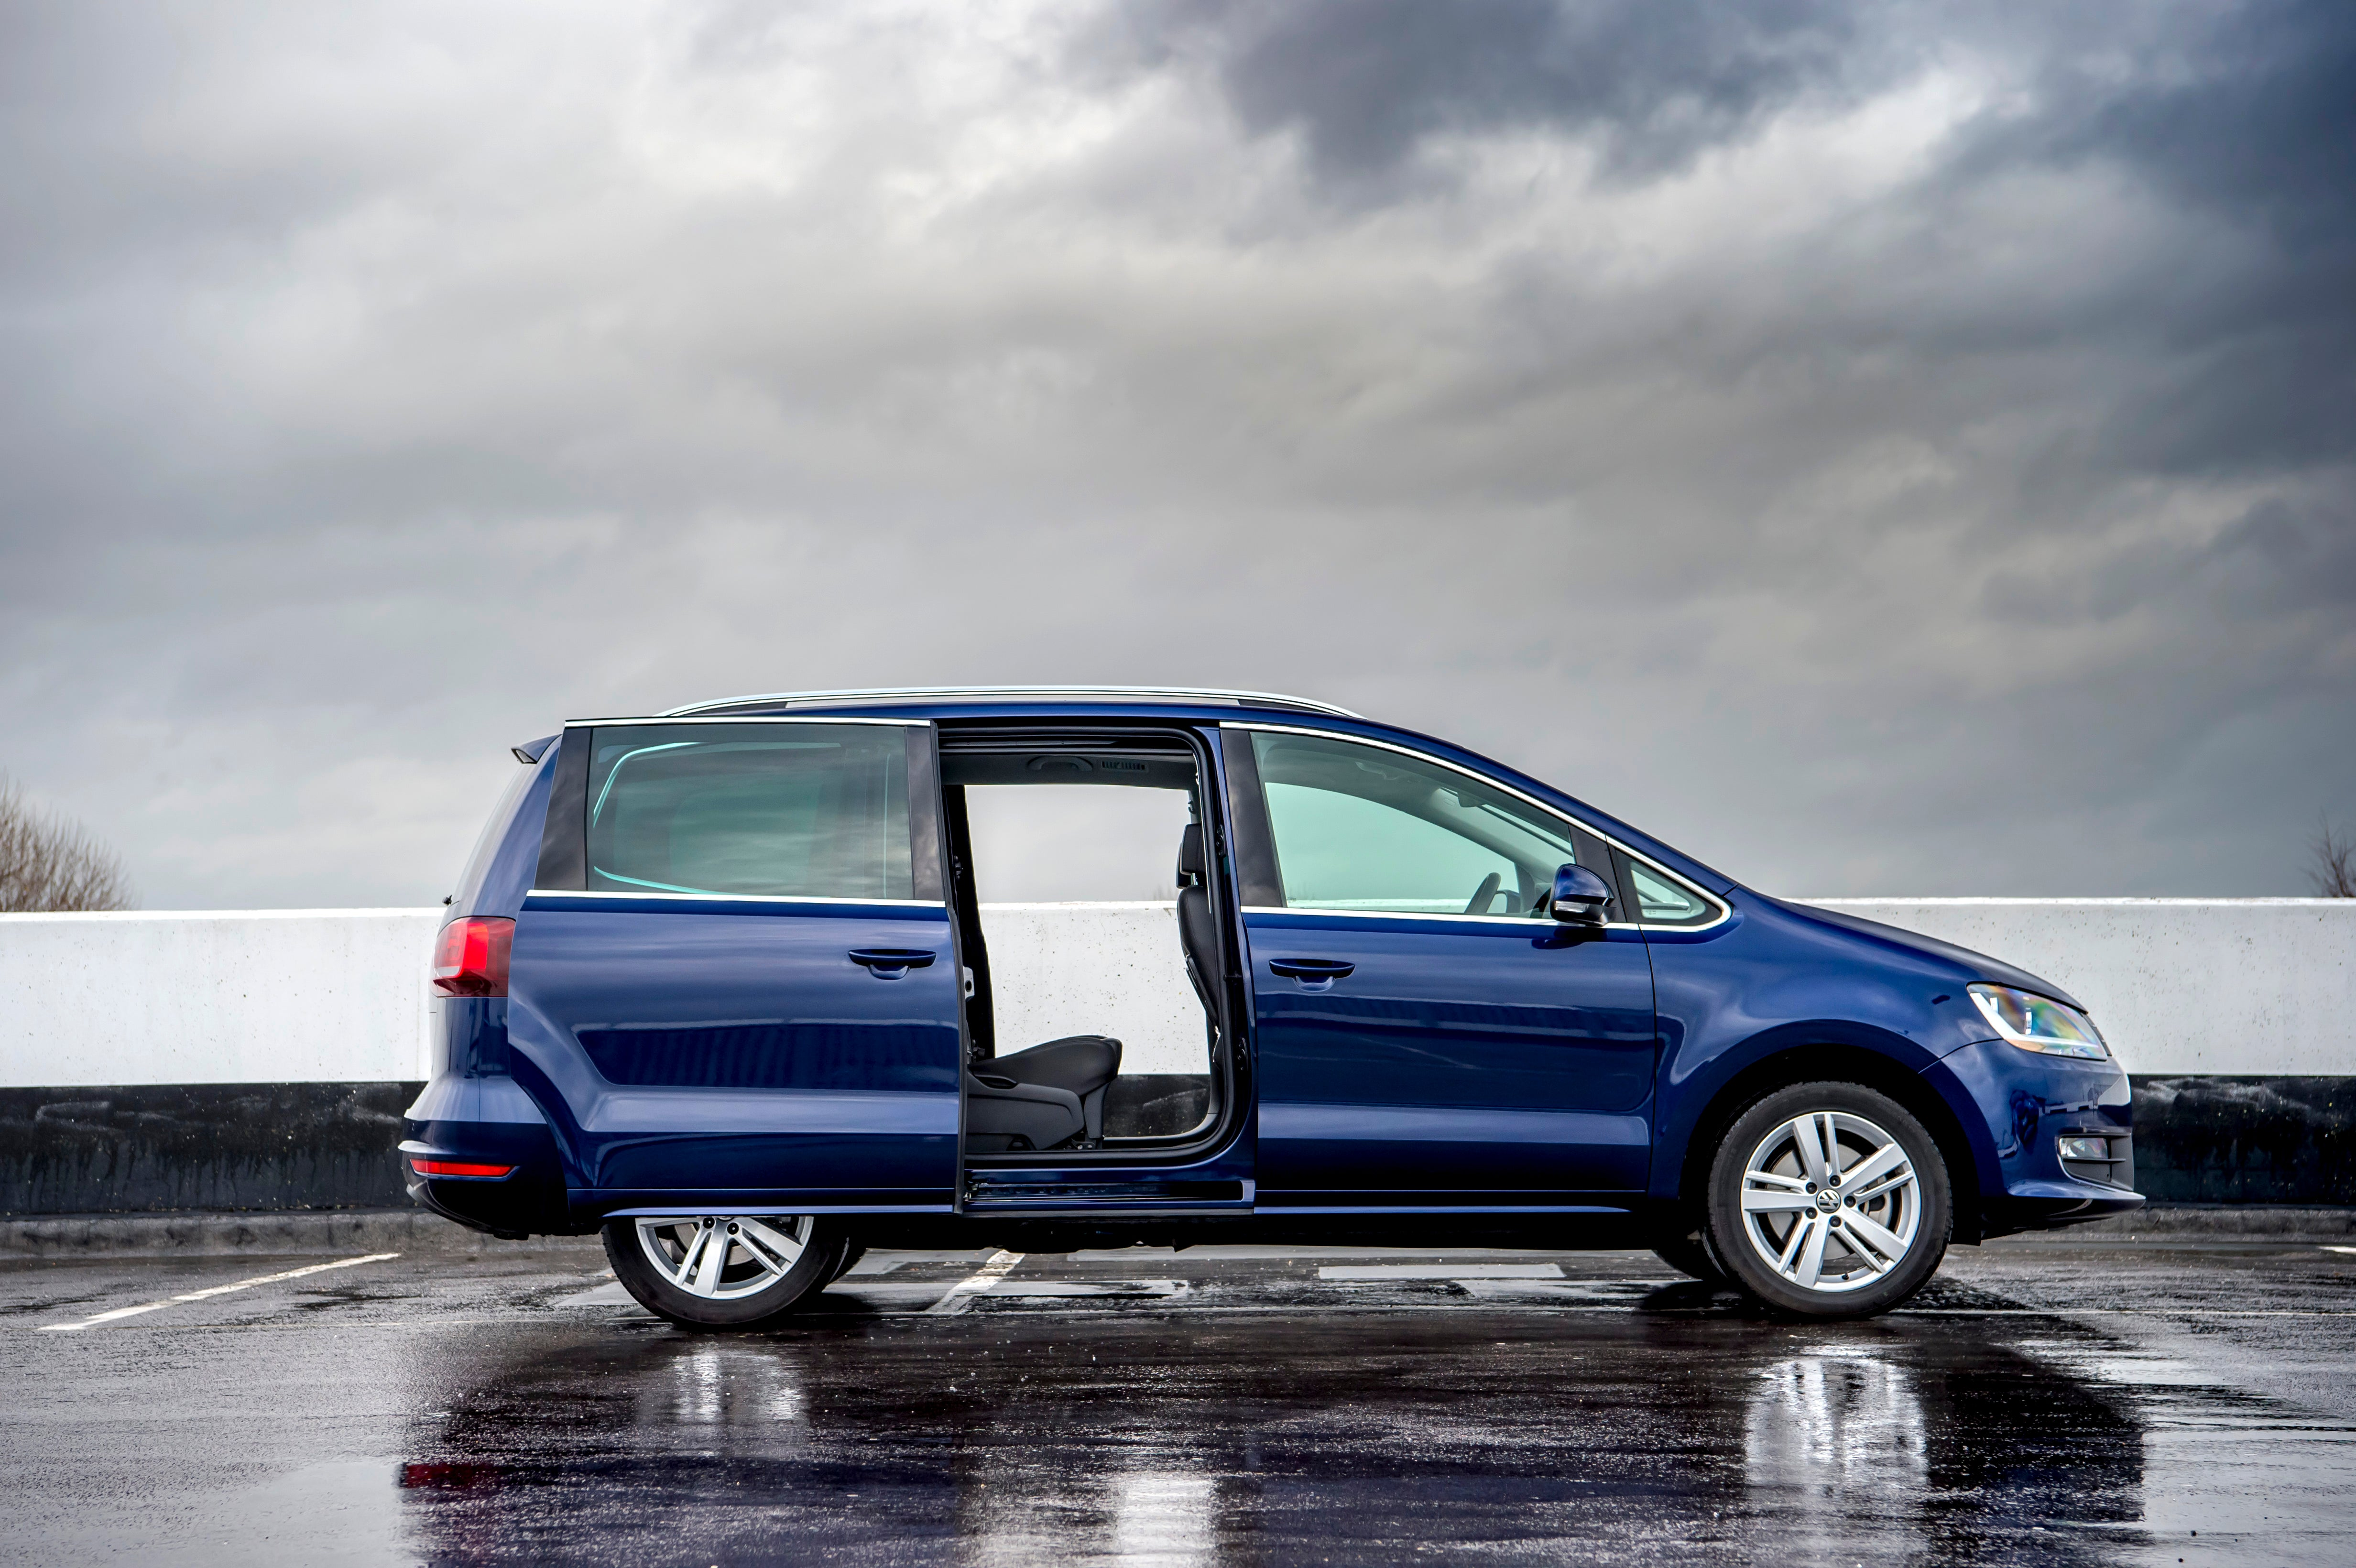 Volkswagen Sharan Right Side View